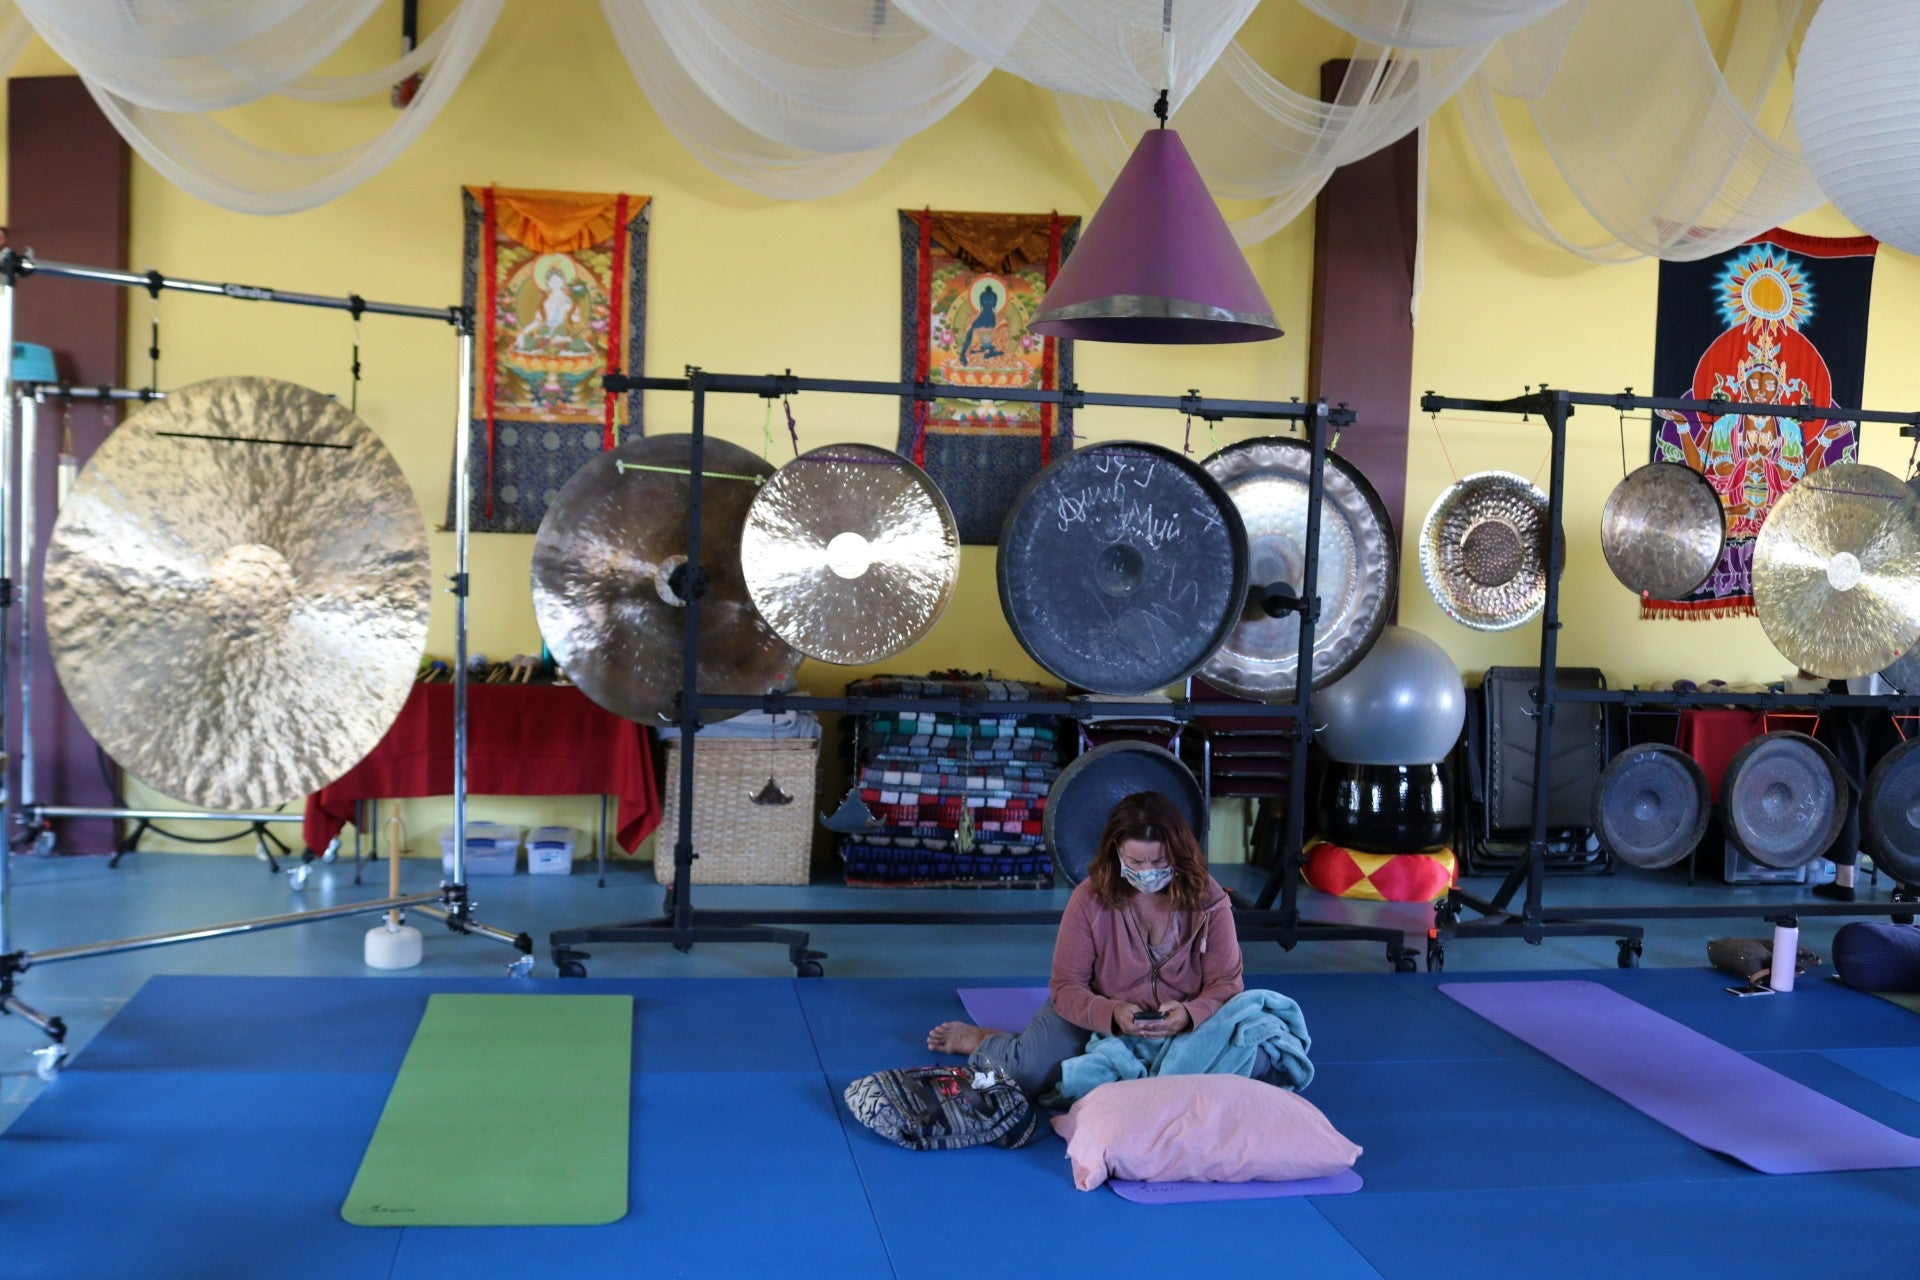 A gong bath benefits the busy mind and scattered attentions caused by today's technologically driven world.